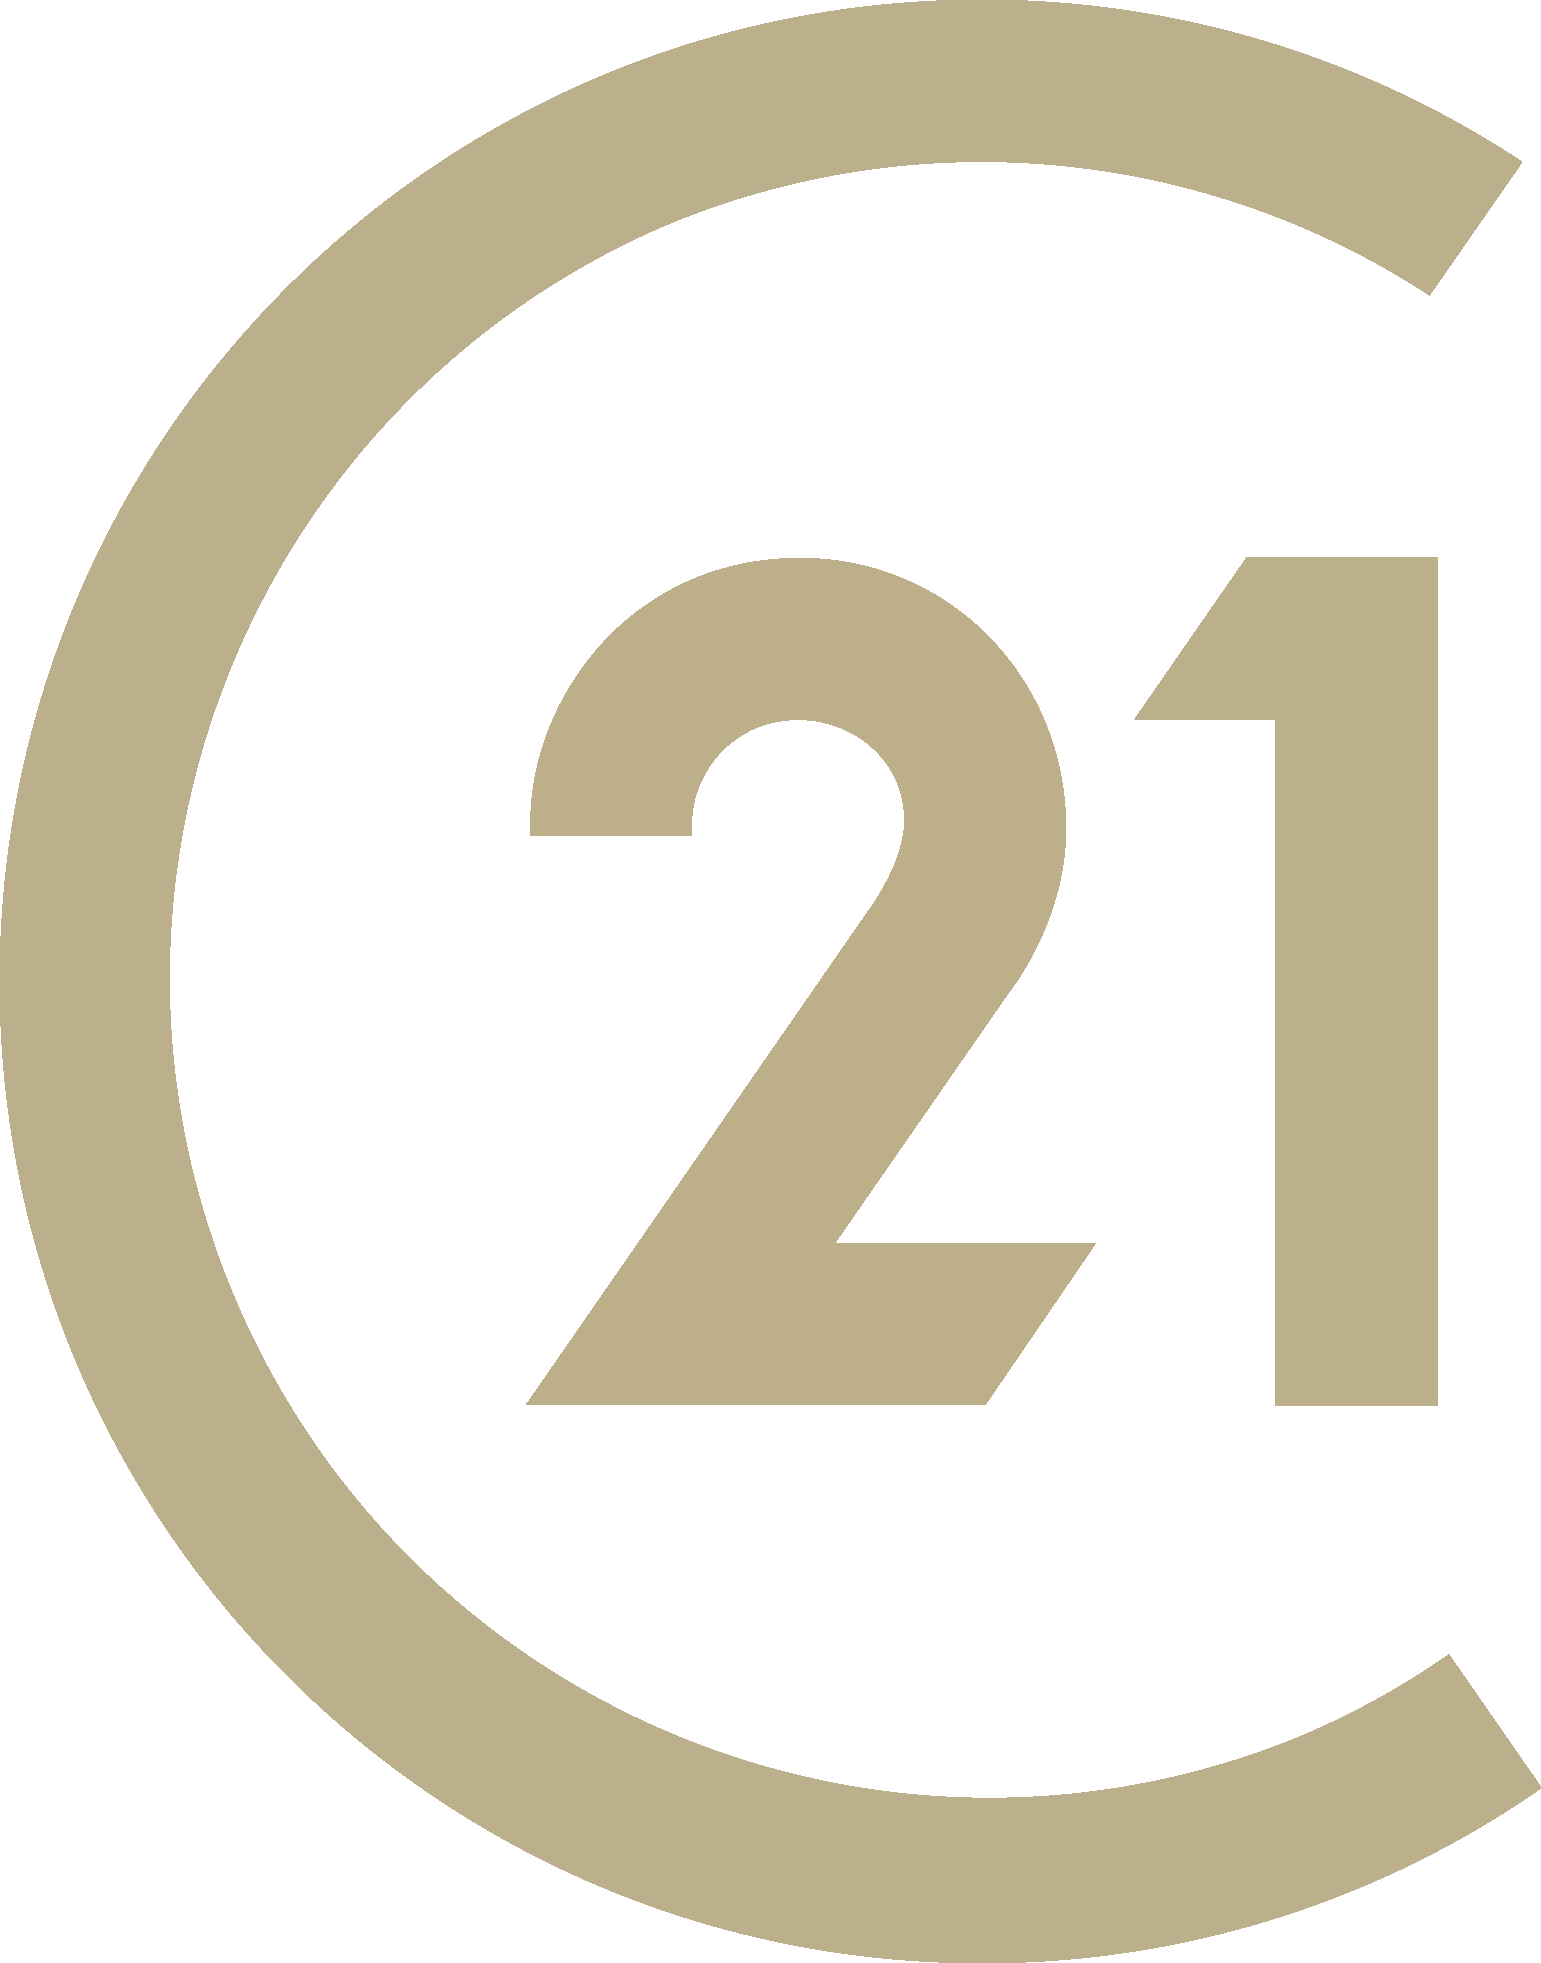 Century 21 Logo (Real Estate) png